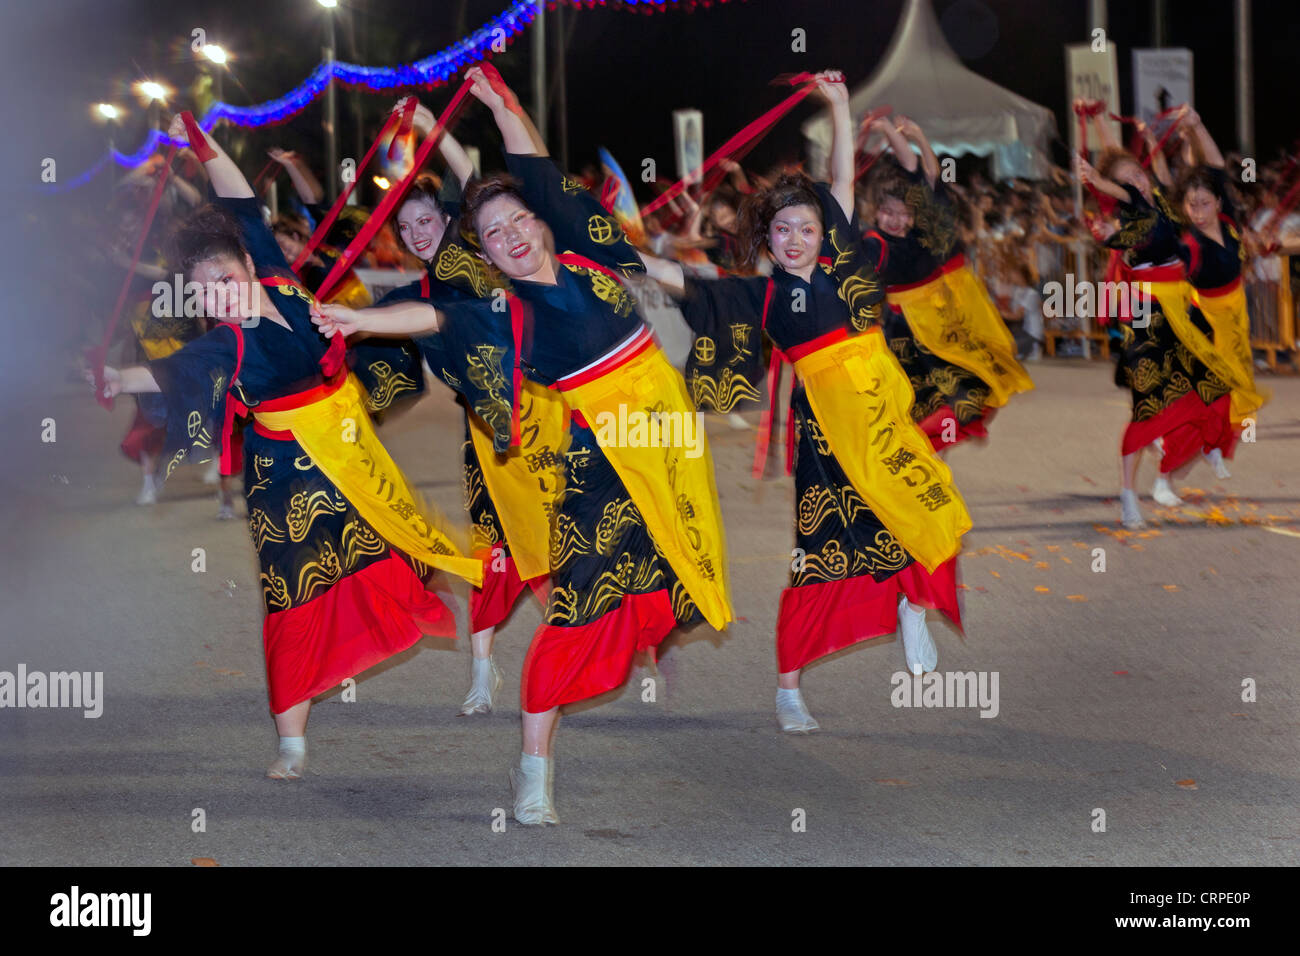 South East Asia, Singapore, Annual Chingay Parade taking place during Chinese New Year - Stock Image